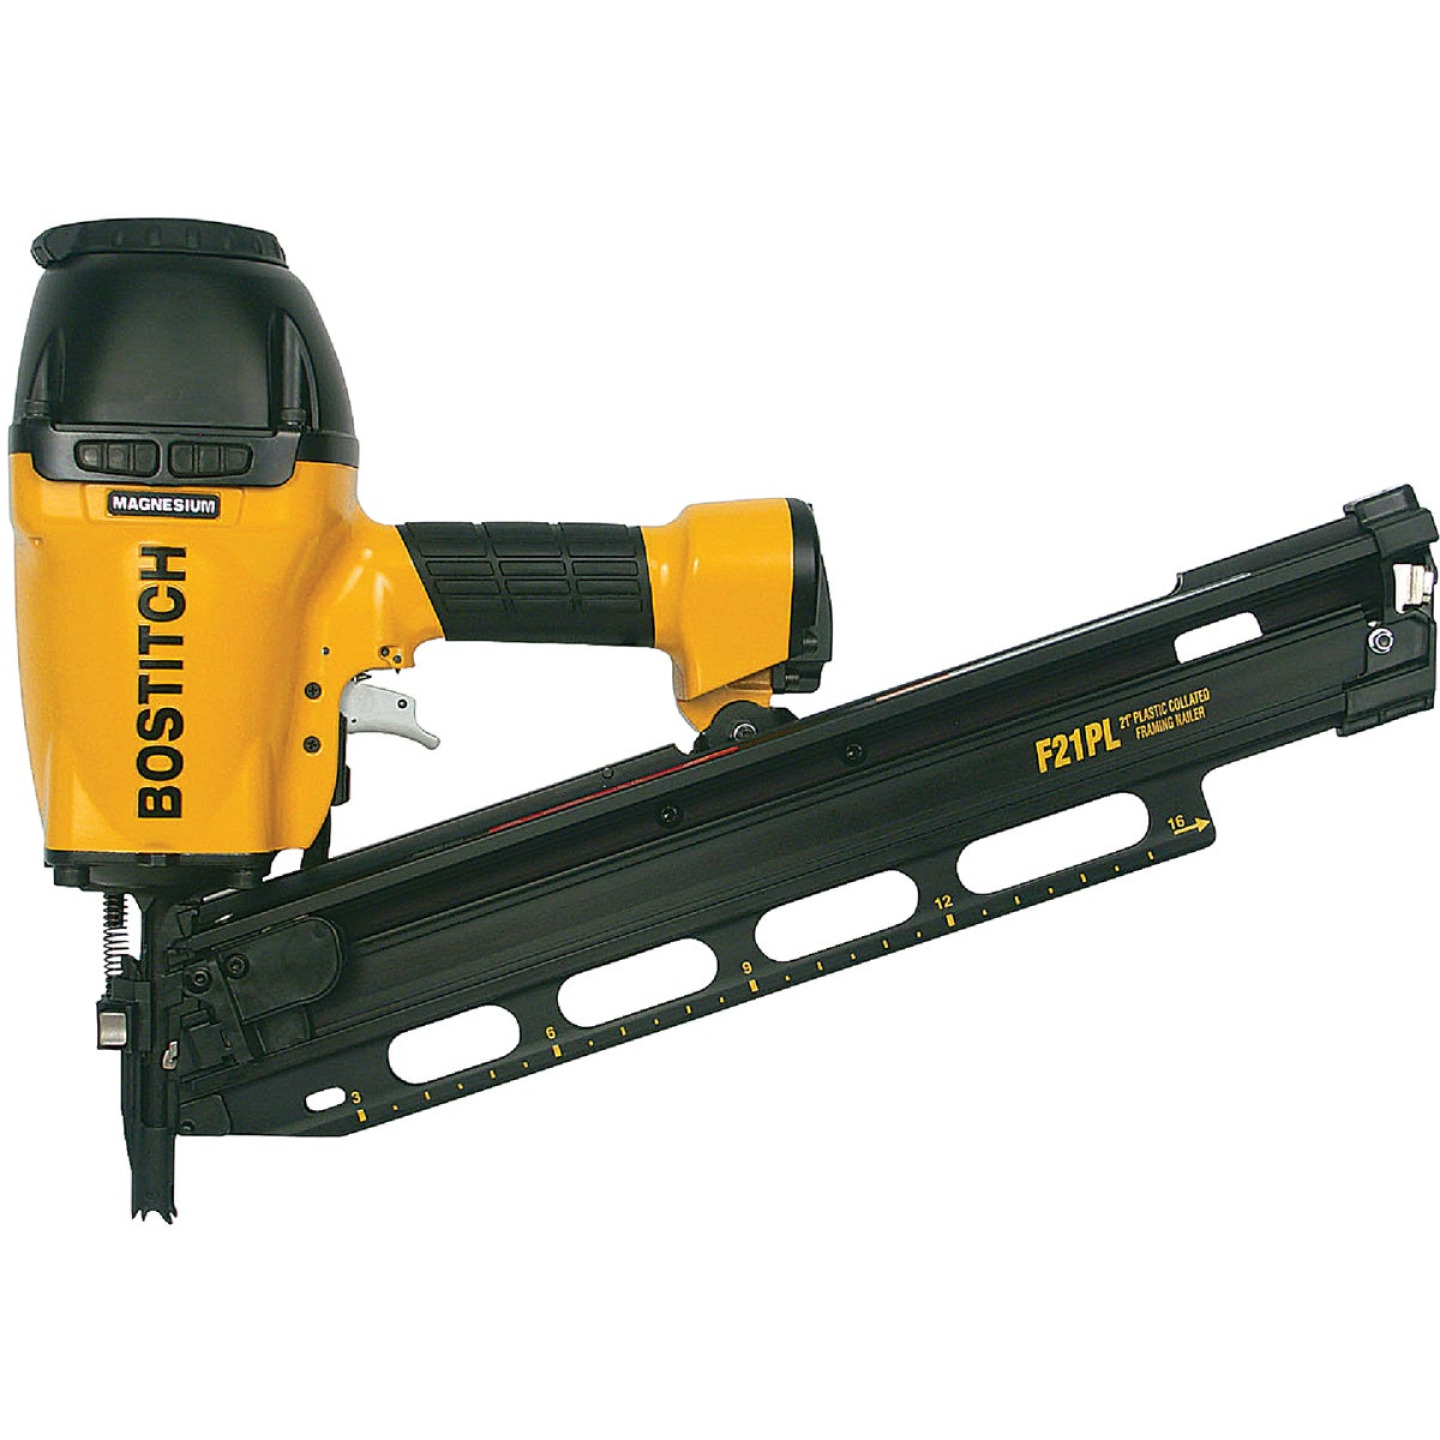 Bostitch 21 Degree 3-1/2 In. Plastic Collated Framing Nailer Image 1